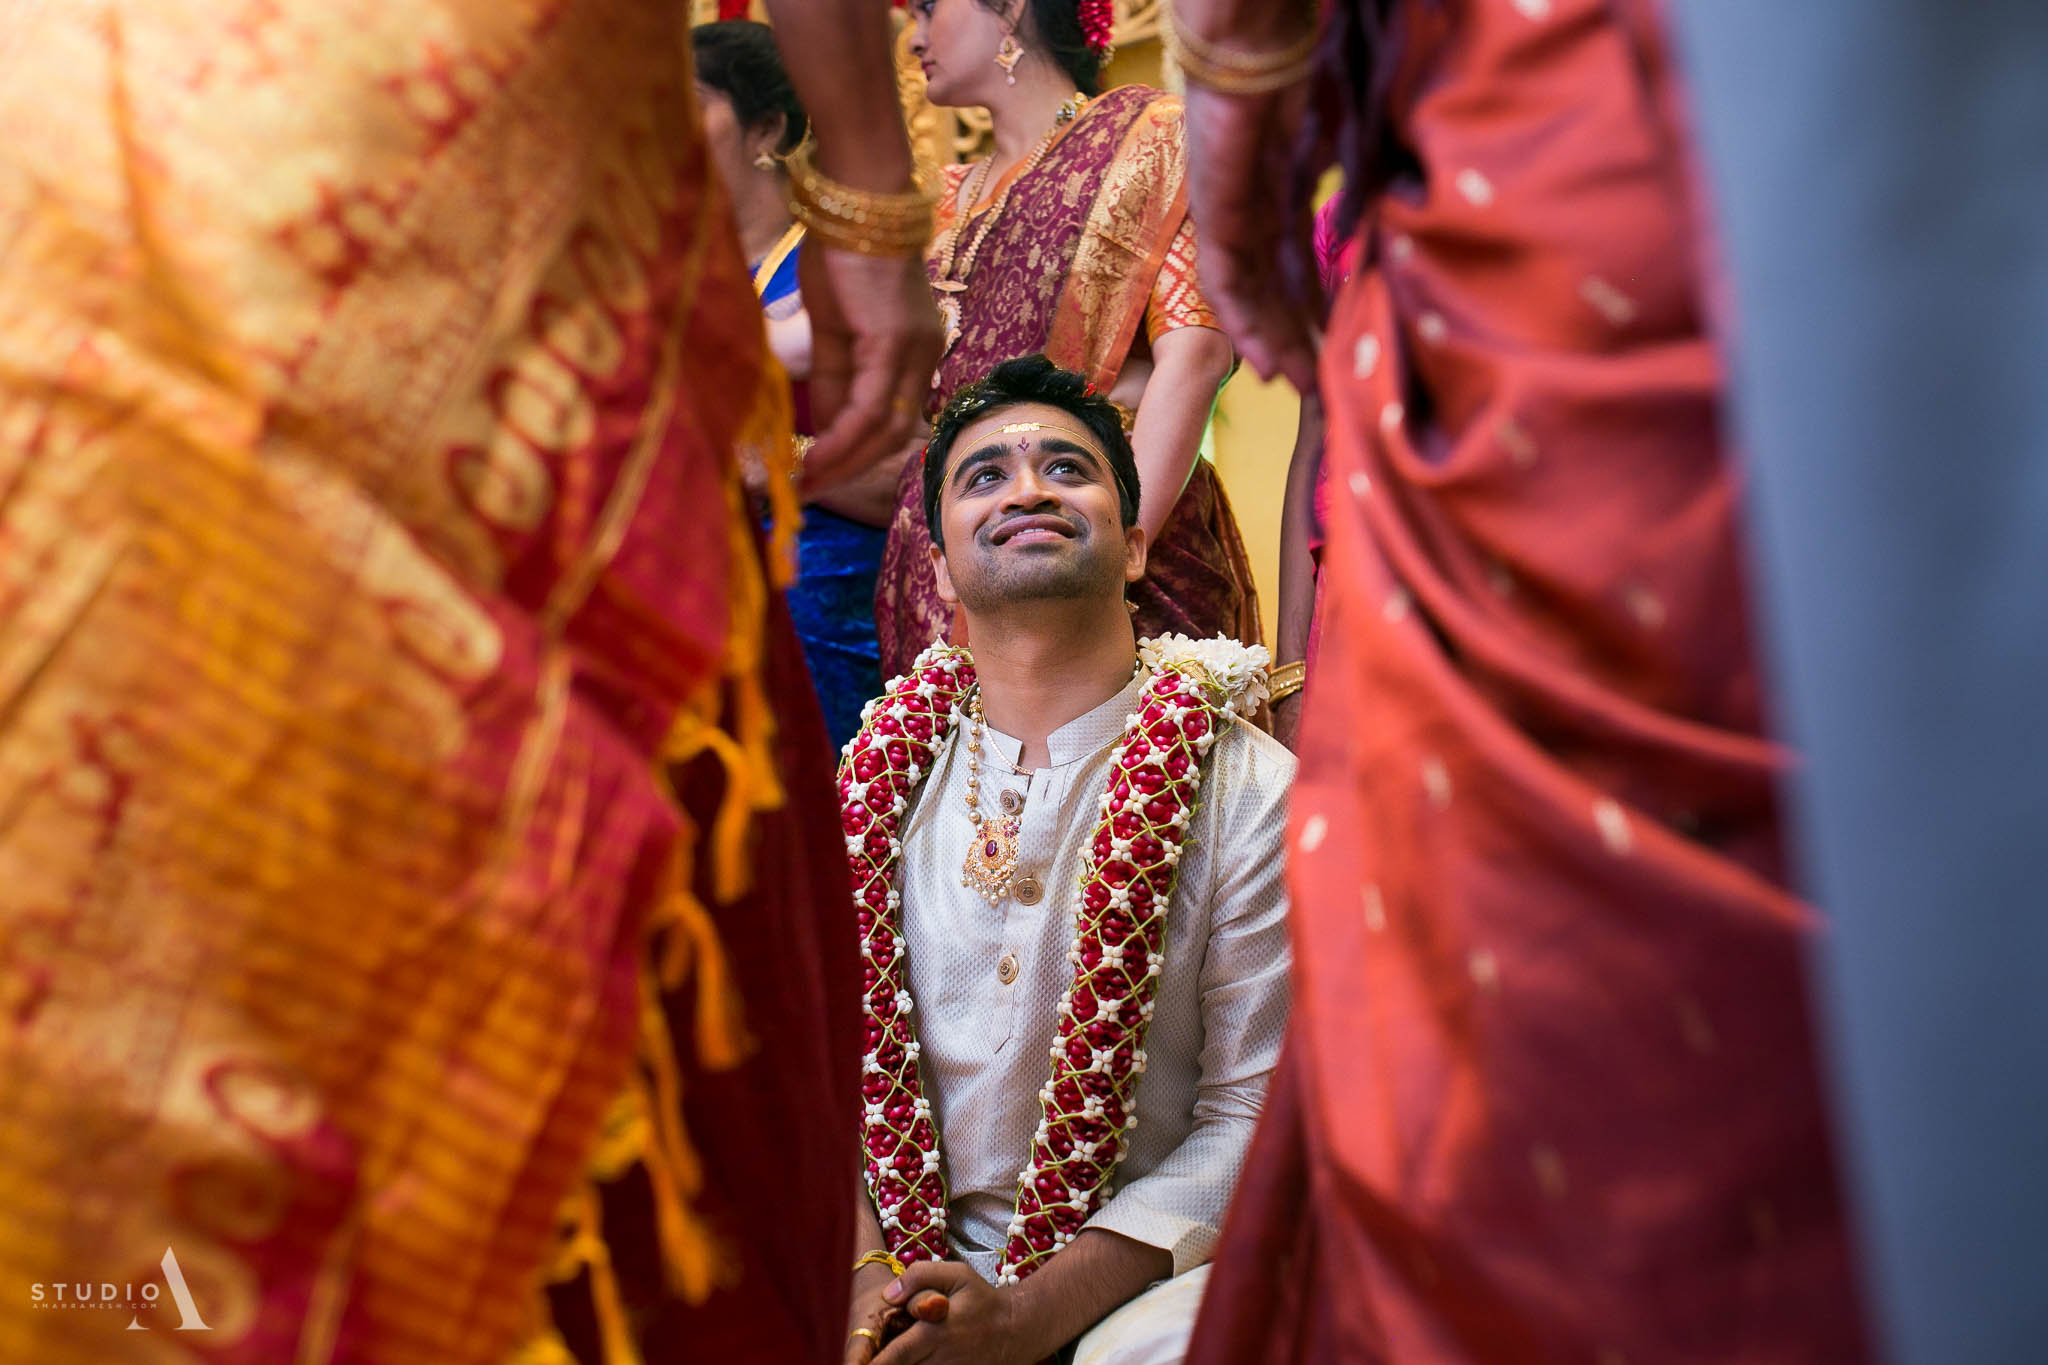 Destination-wedding-photographer-chennai-22